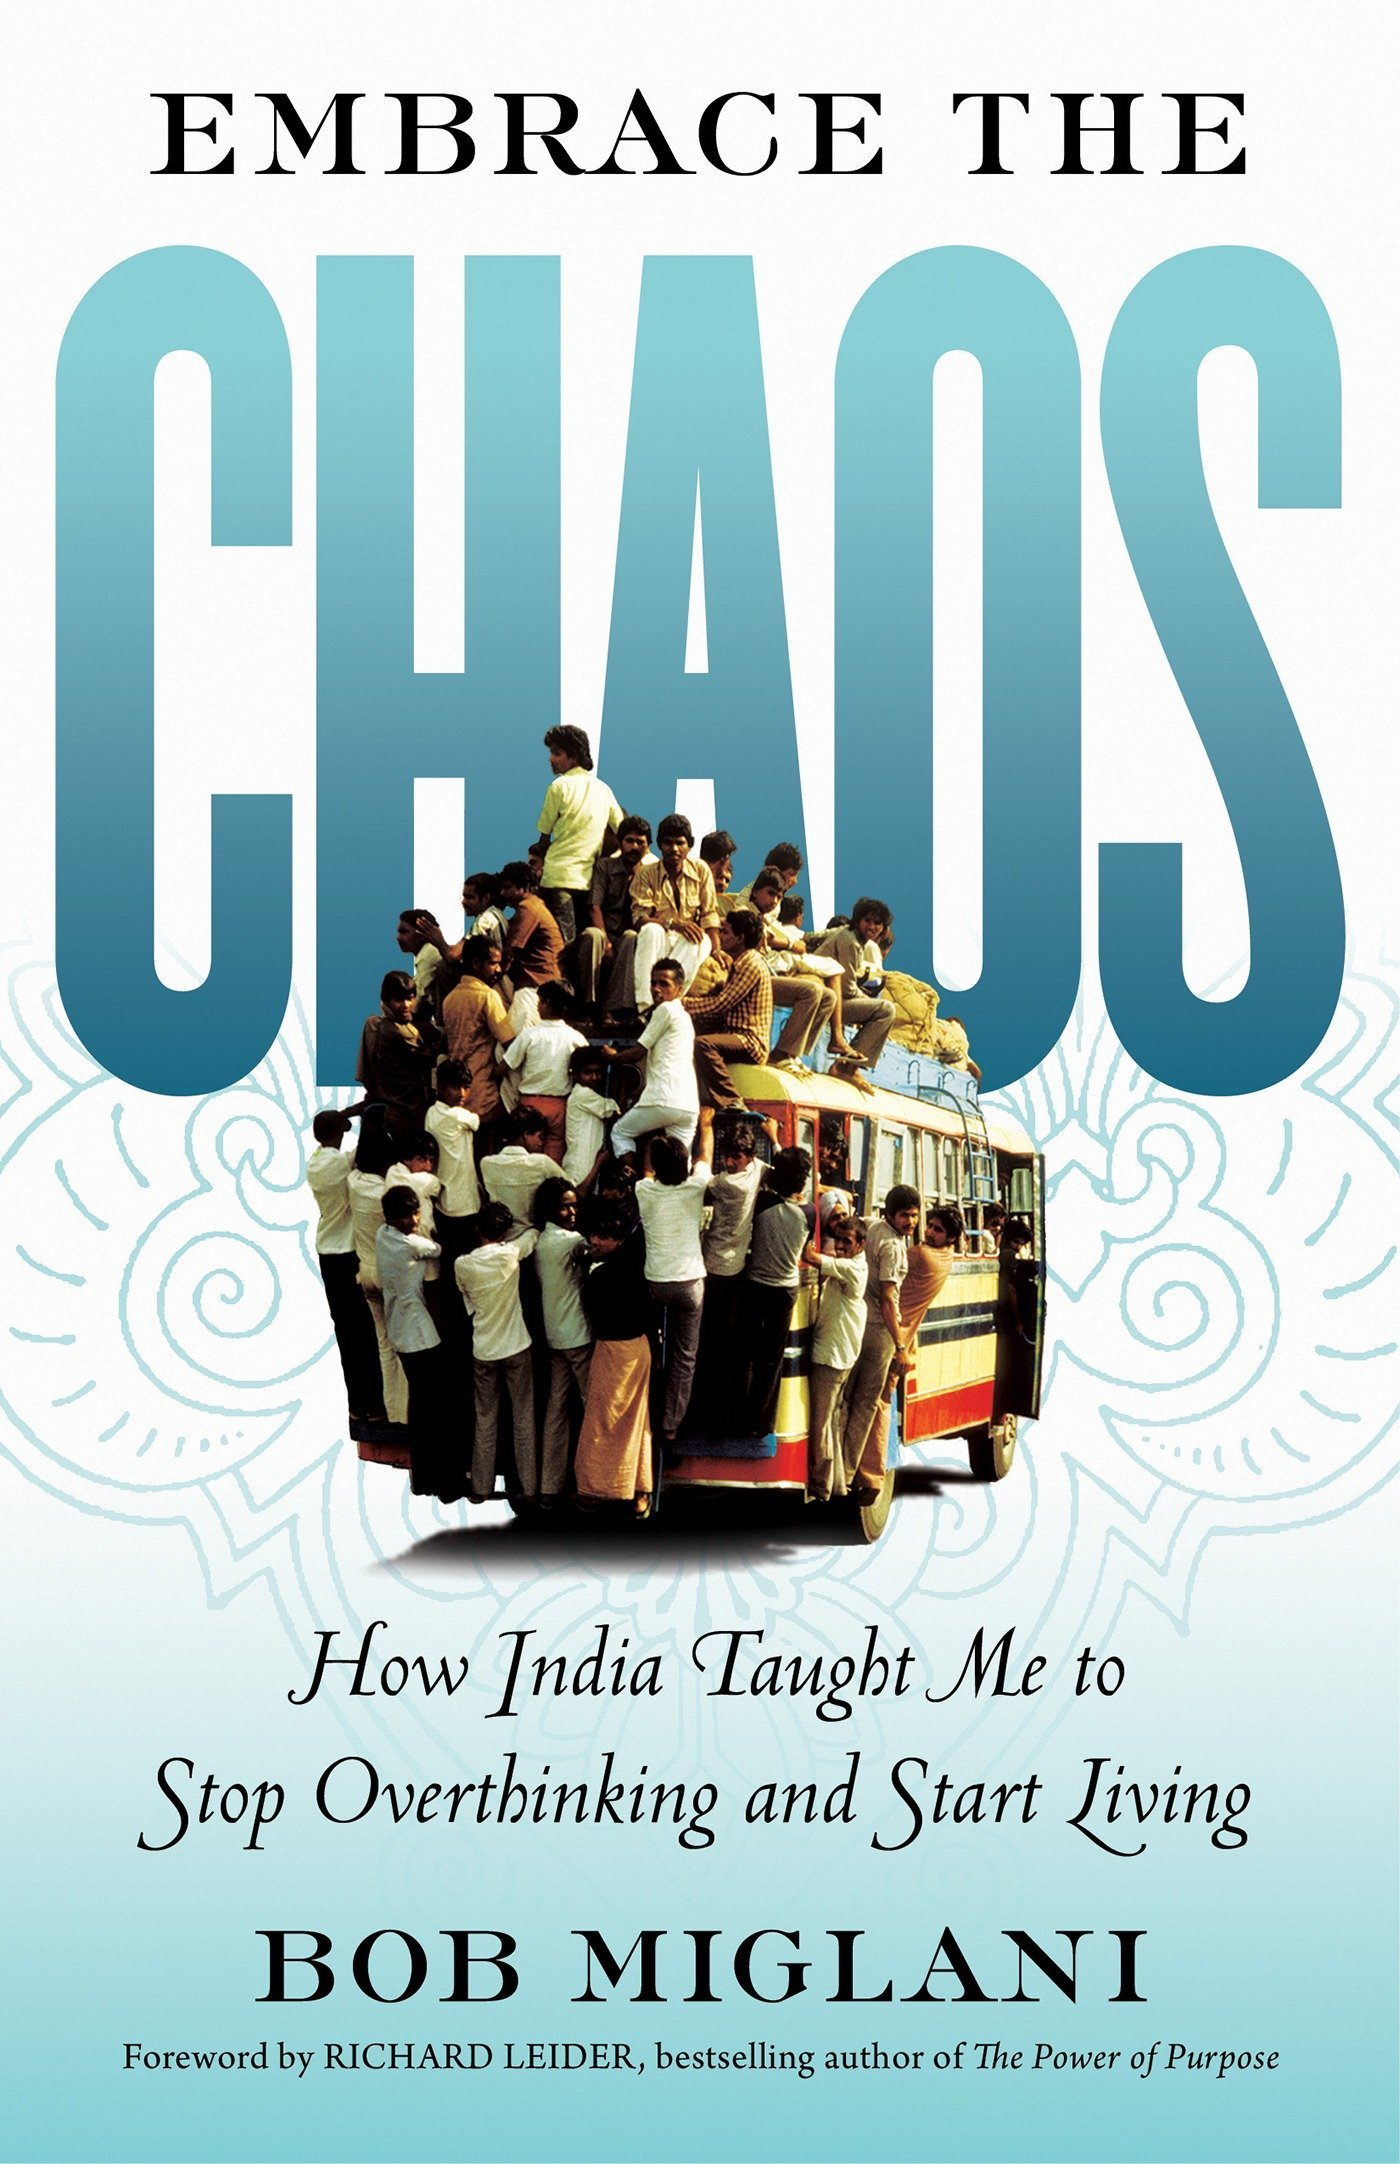 Embrace the Chaos: How India Taught Me to Stop Overthinking and Start Living pdf